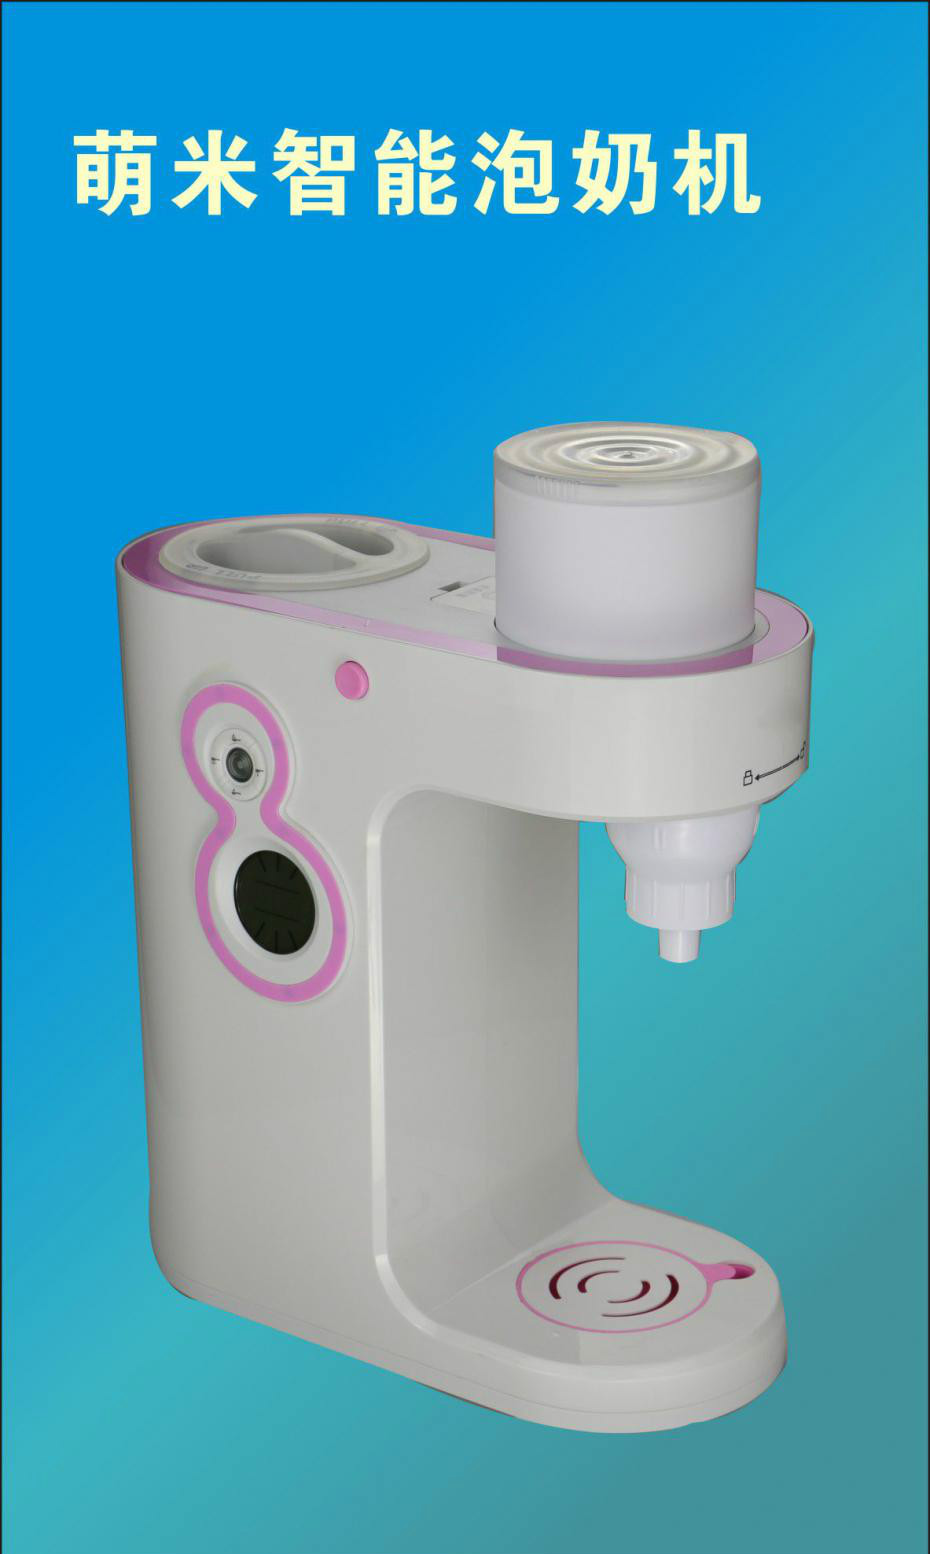 Automatic Bubble Milk Machine Quickly High Quality  Certificate Precise Matching A key management edtid new high quality small commercial ice machine household ice machine tea milk shop